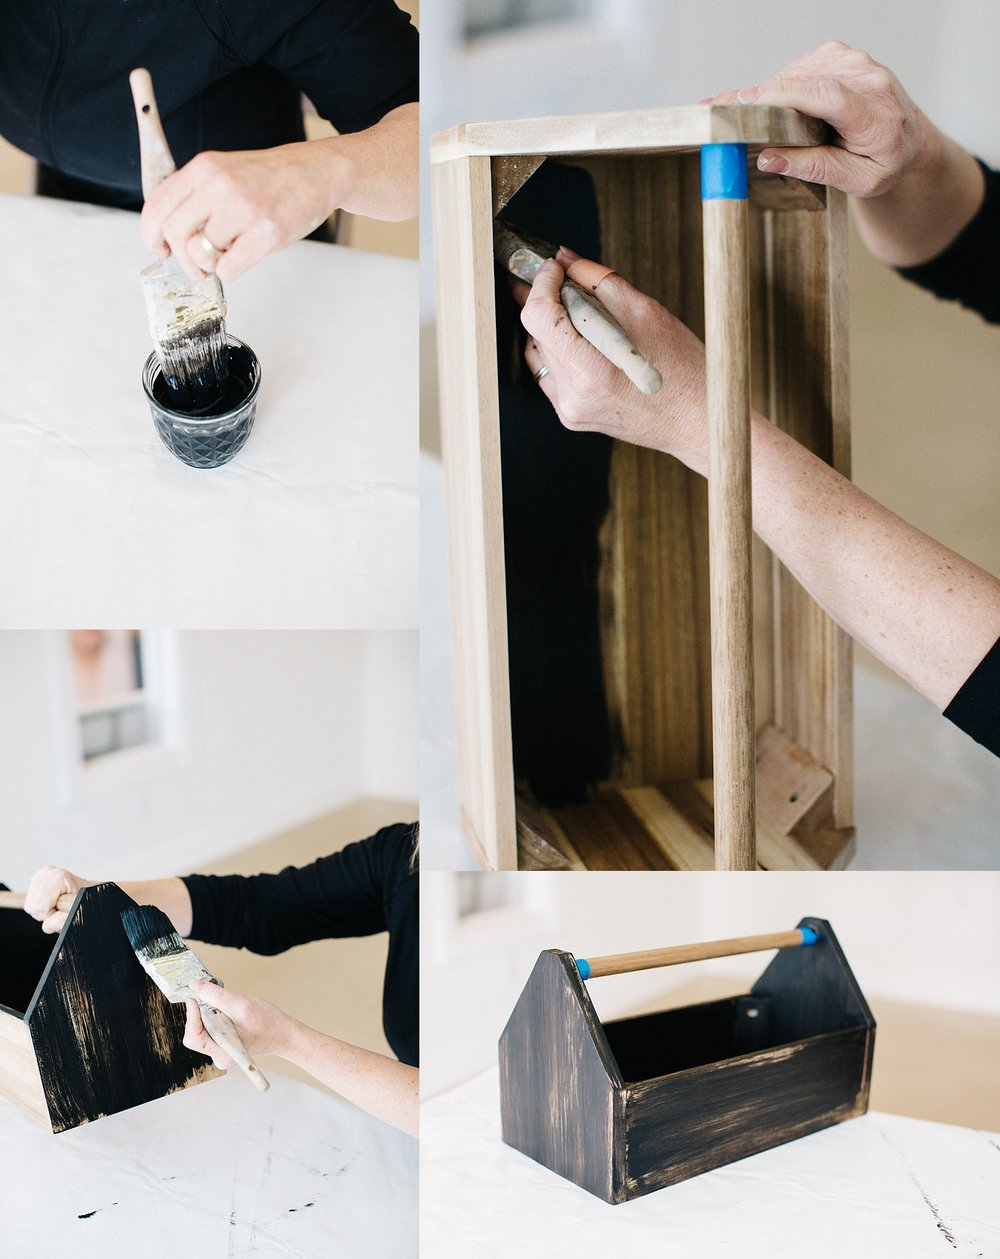 STEP 4:  This is the fun part! Paint your box starting with the inside and working your way to the outside. Jill gave the interior a solid coat of paint and let the wood grain peek through the exterior.